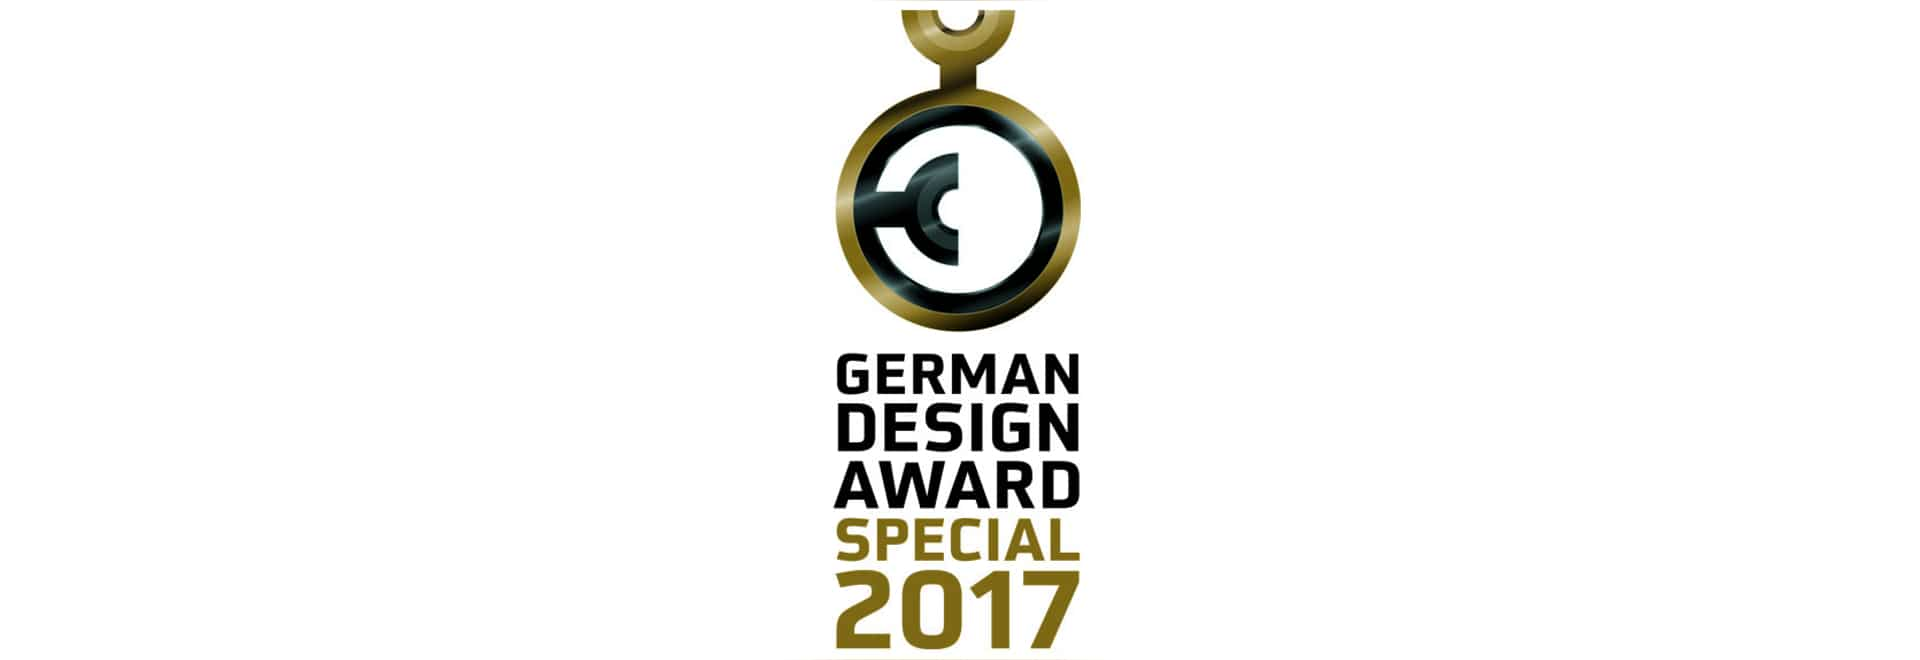 X_TEND awarded with German Design 2017 - Special Mention